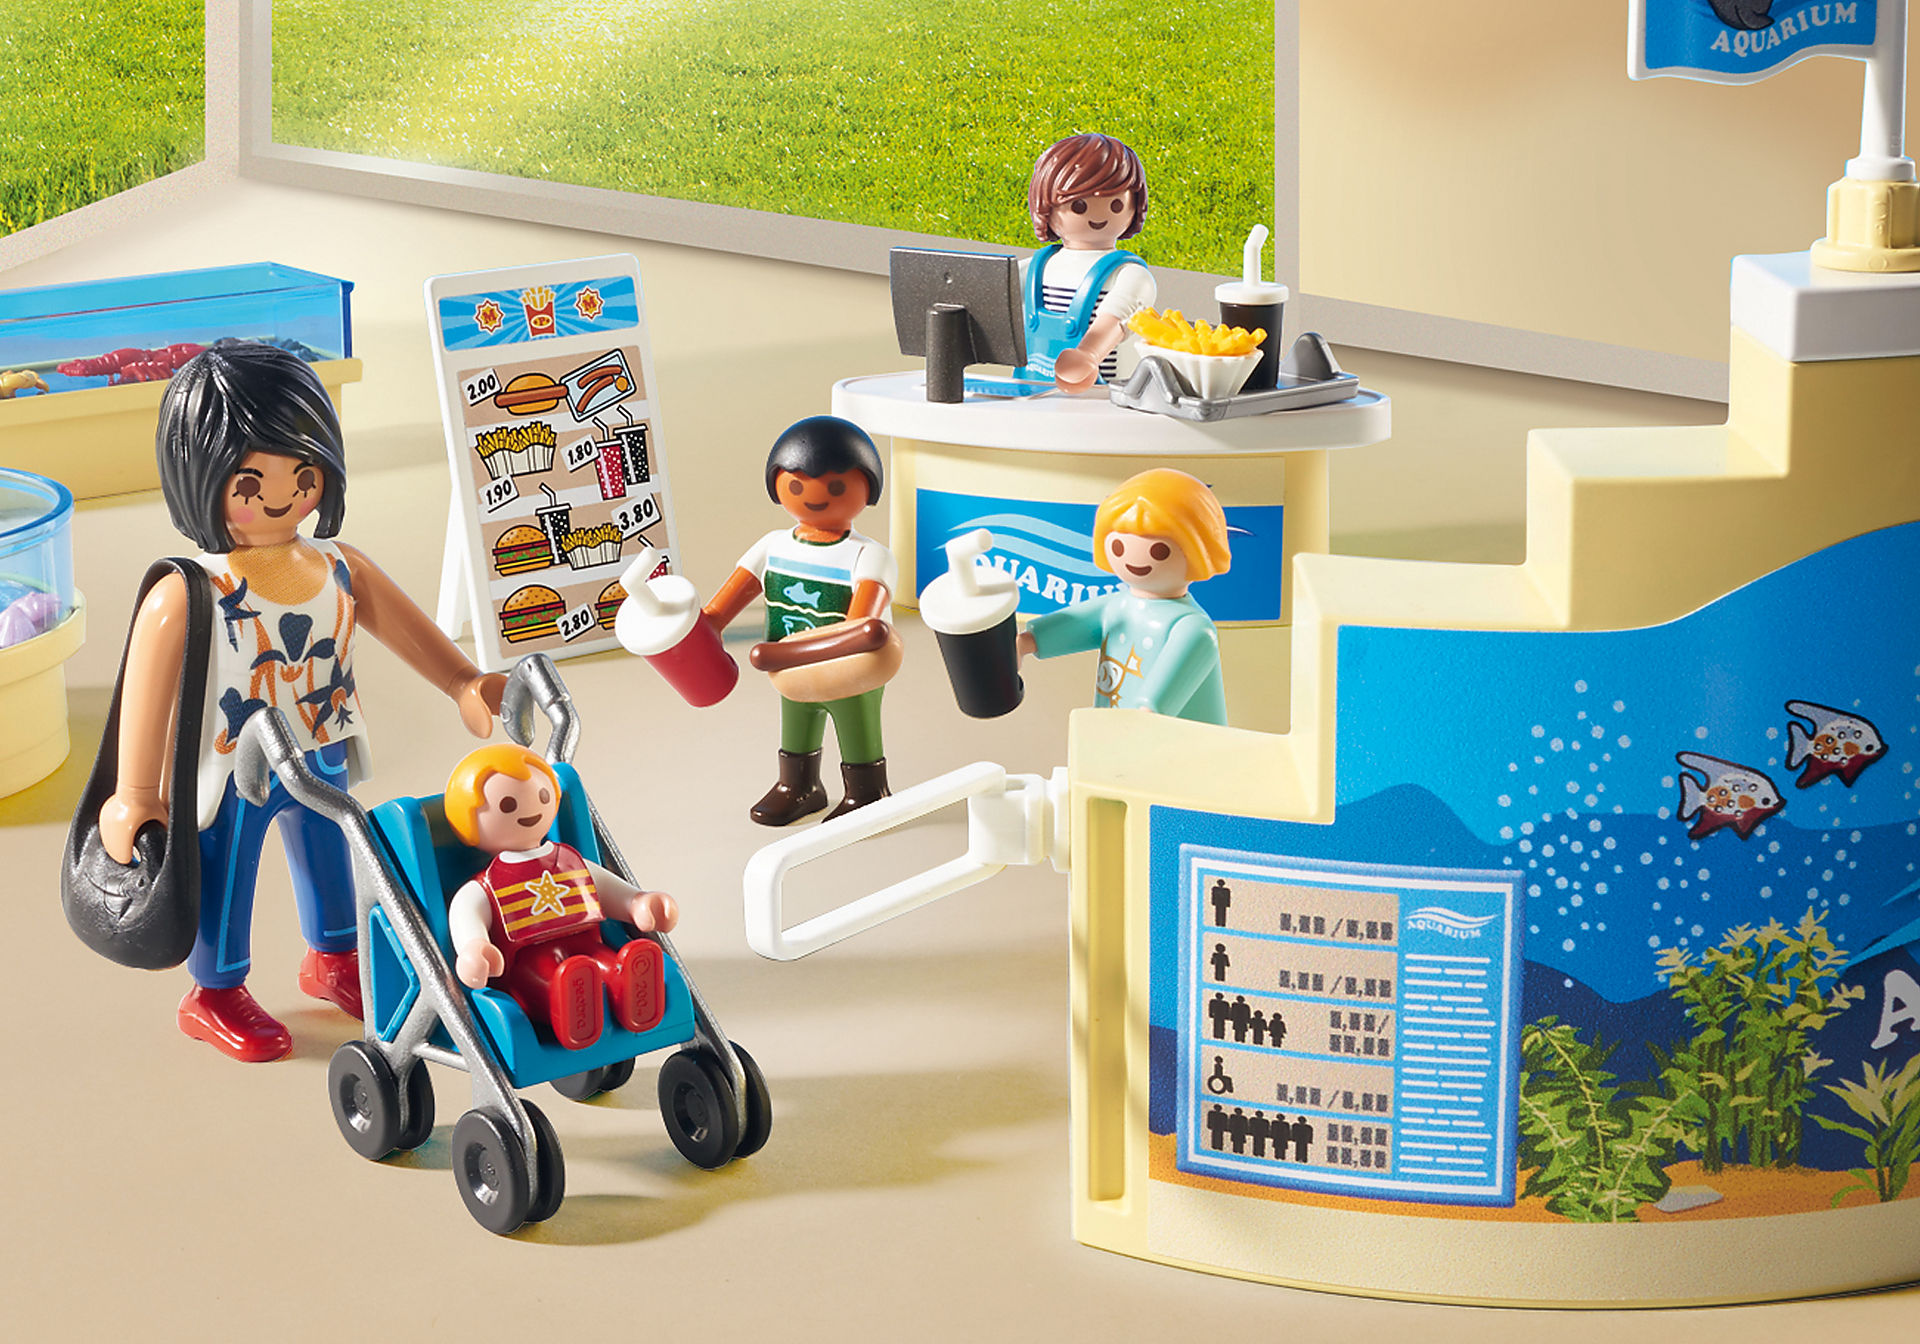 http://media.playmobil.com/i/playmobil/9061_product_extra1/Κατάστημα Ενυδρείου